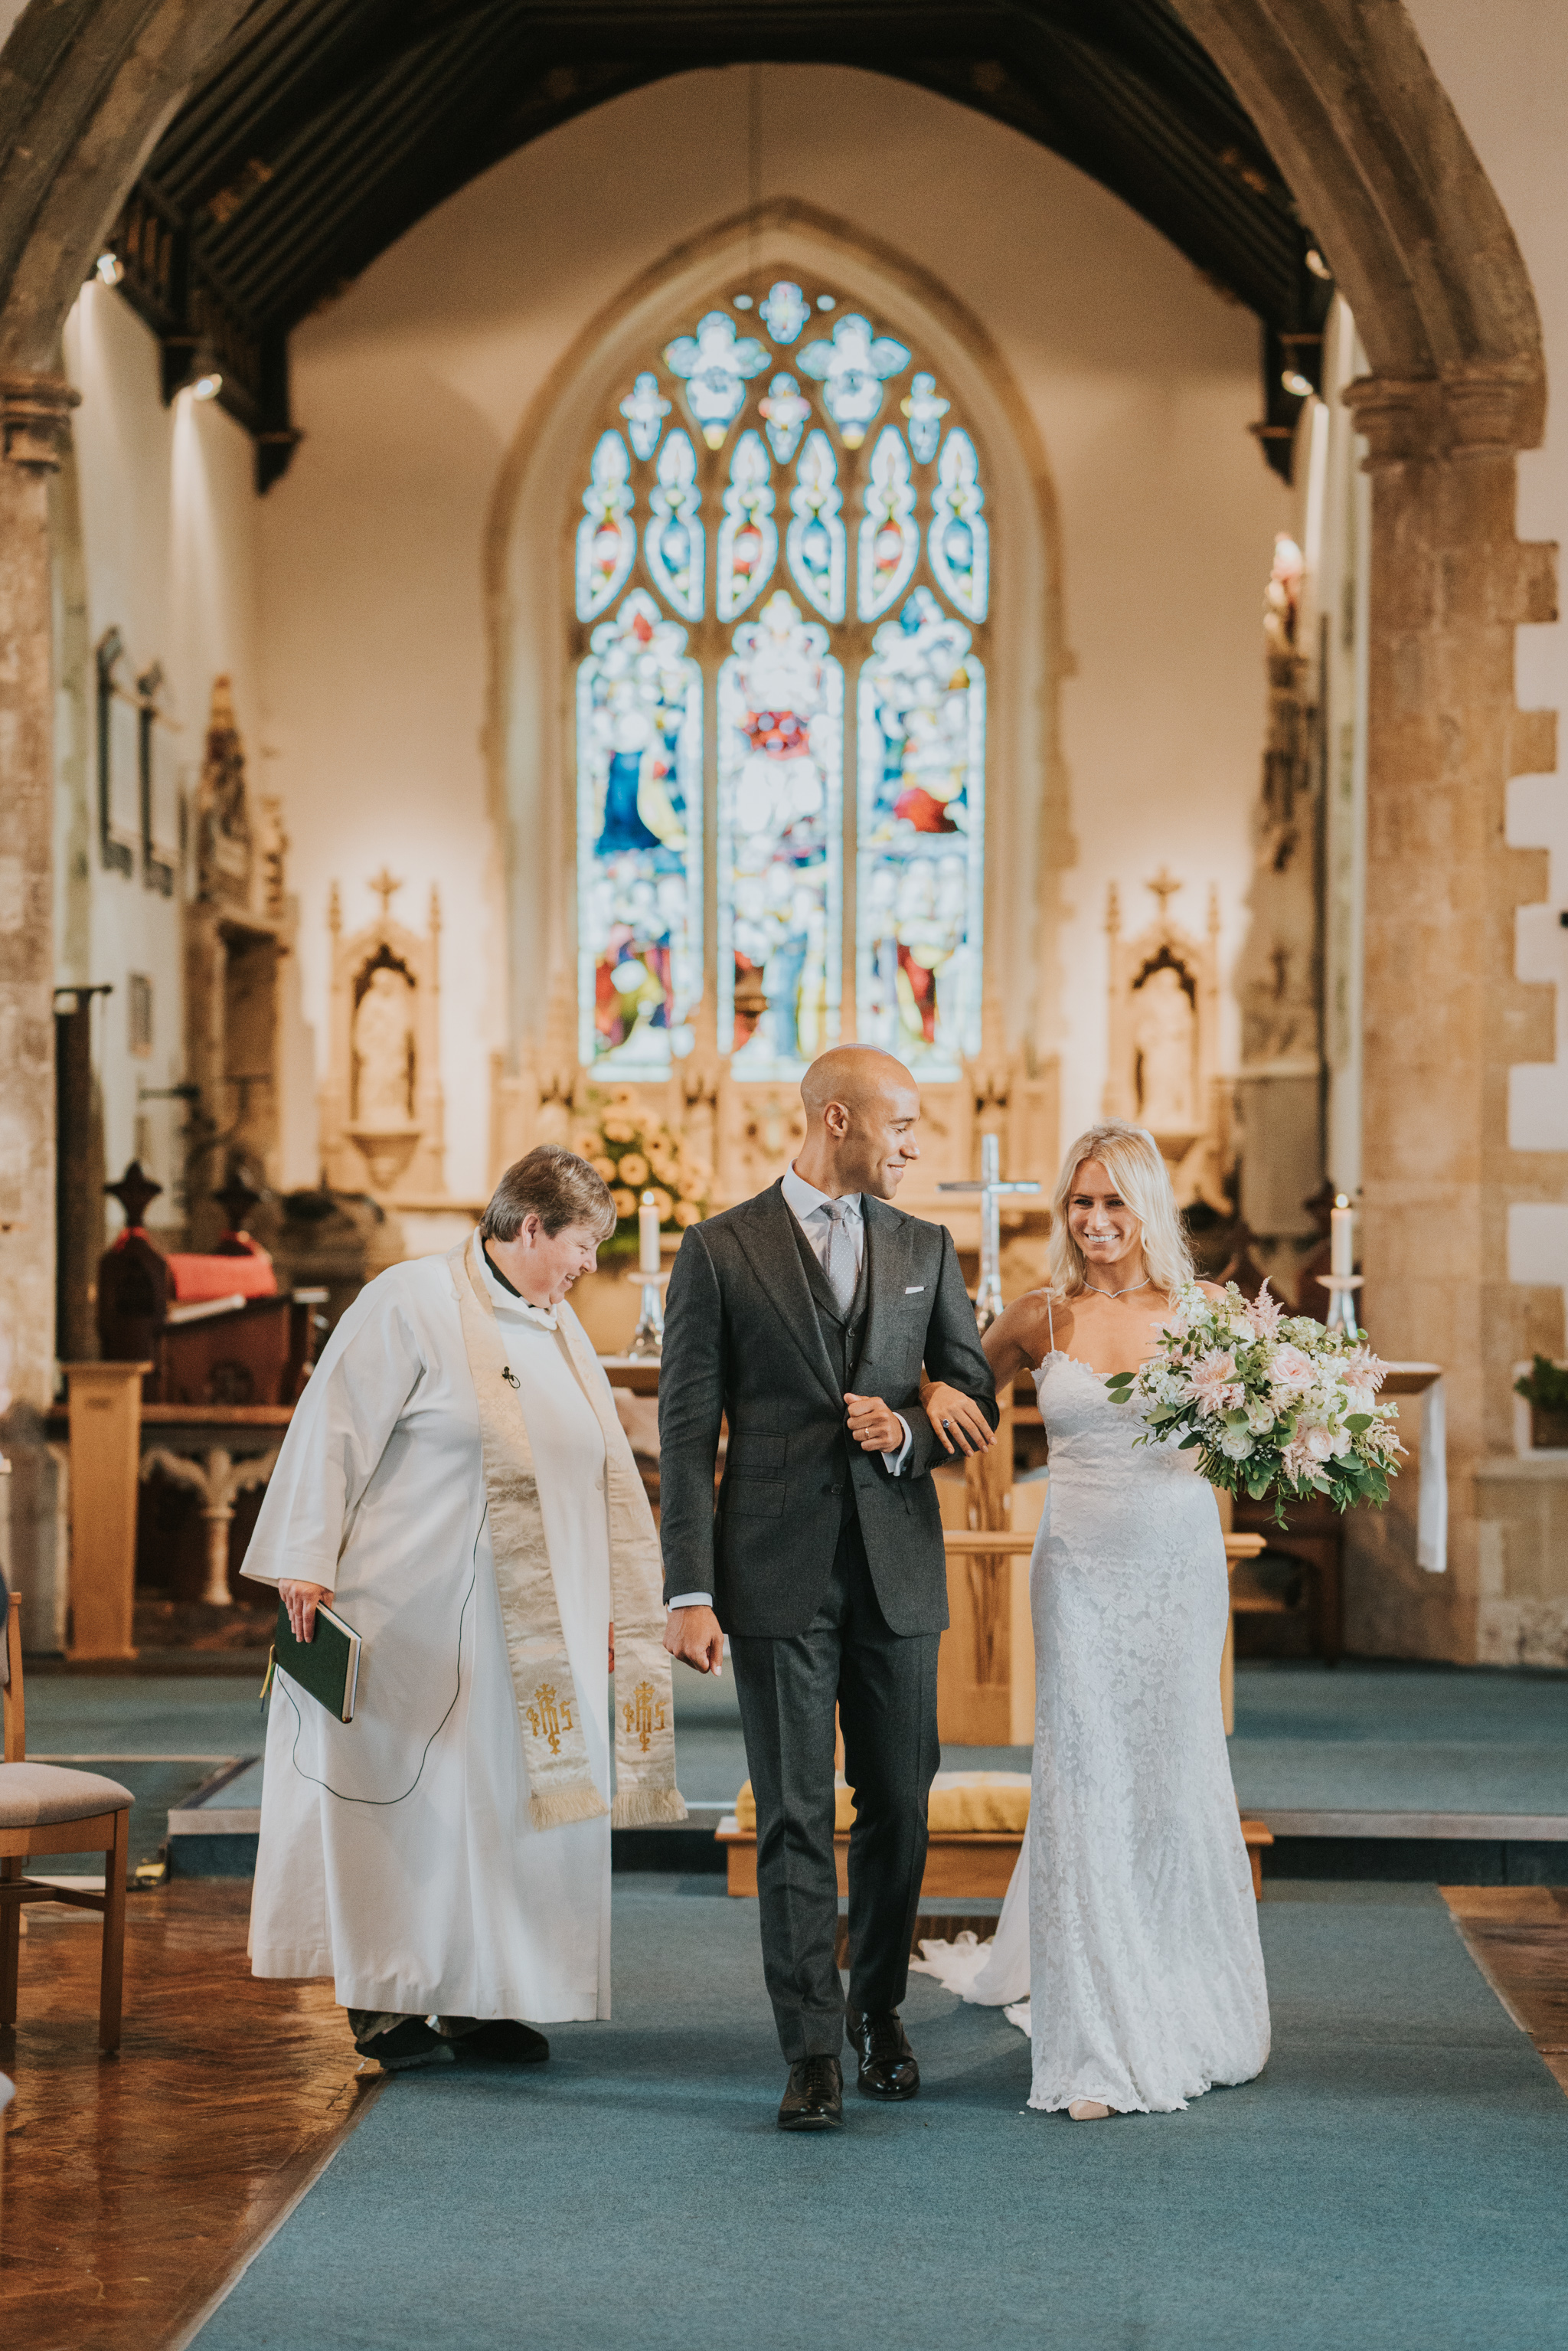 intimate-english-church-wedding-sarah-alex-colchester-essex-grace-elizabeth-colchester-essex-alternative-wedding-lifestyle-photographer-essex-suffolk-norfolk-devon (60 of 92).jpg